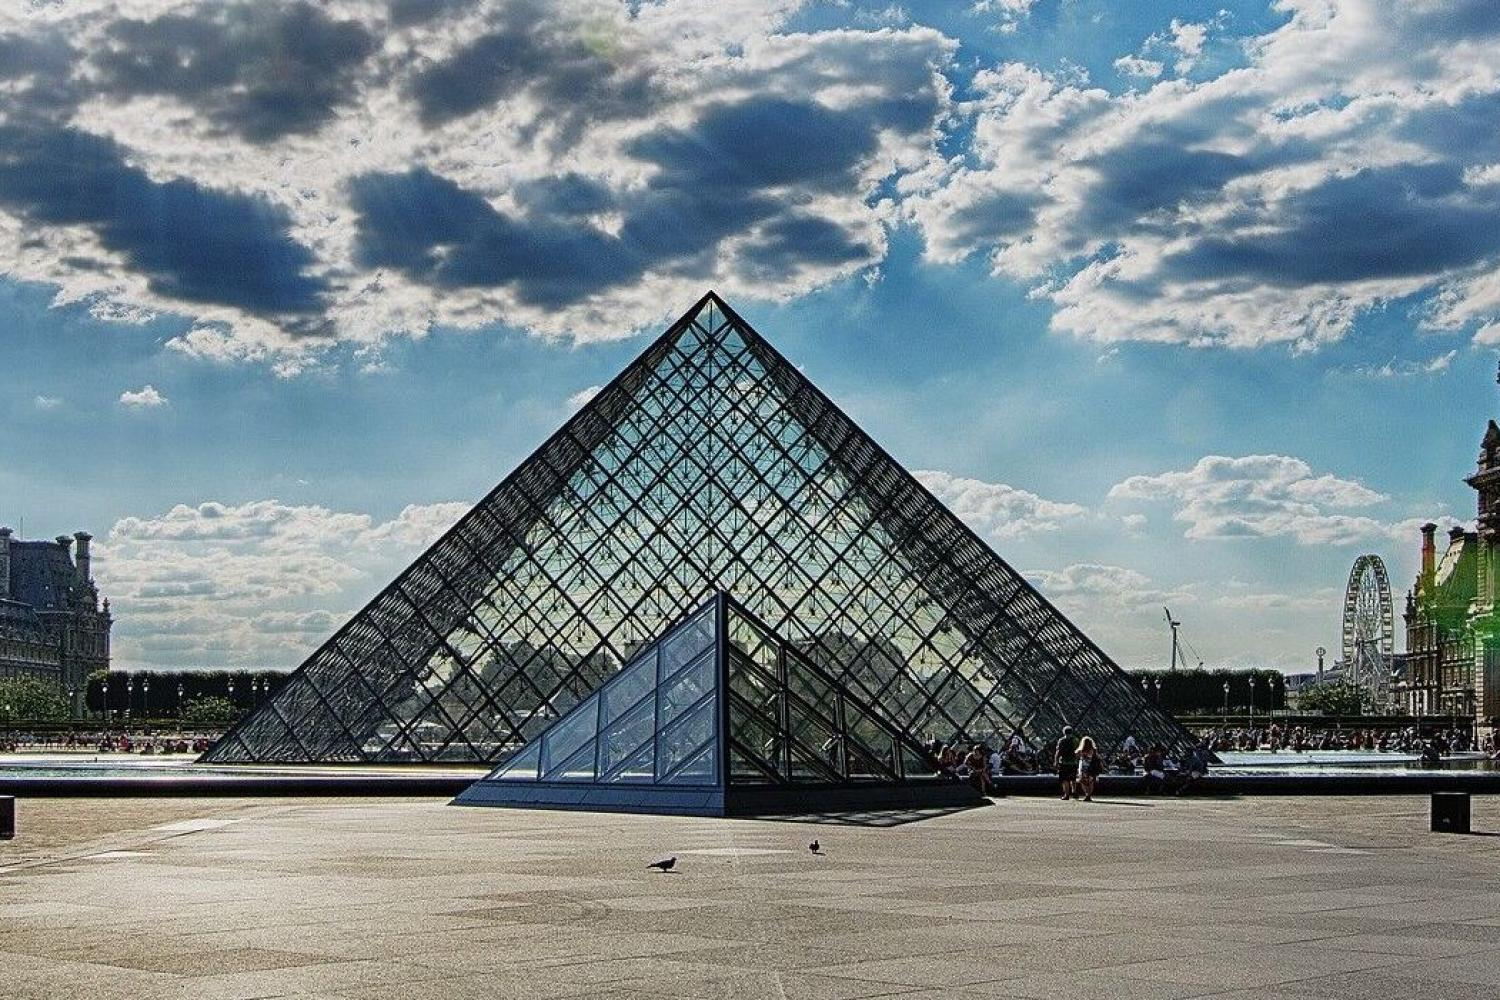 Best of Paris: Skip-the-Line Louvre Museum, Eiffel Tower, Notre Dame & Seine River